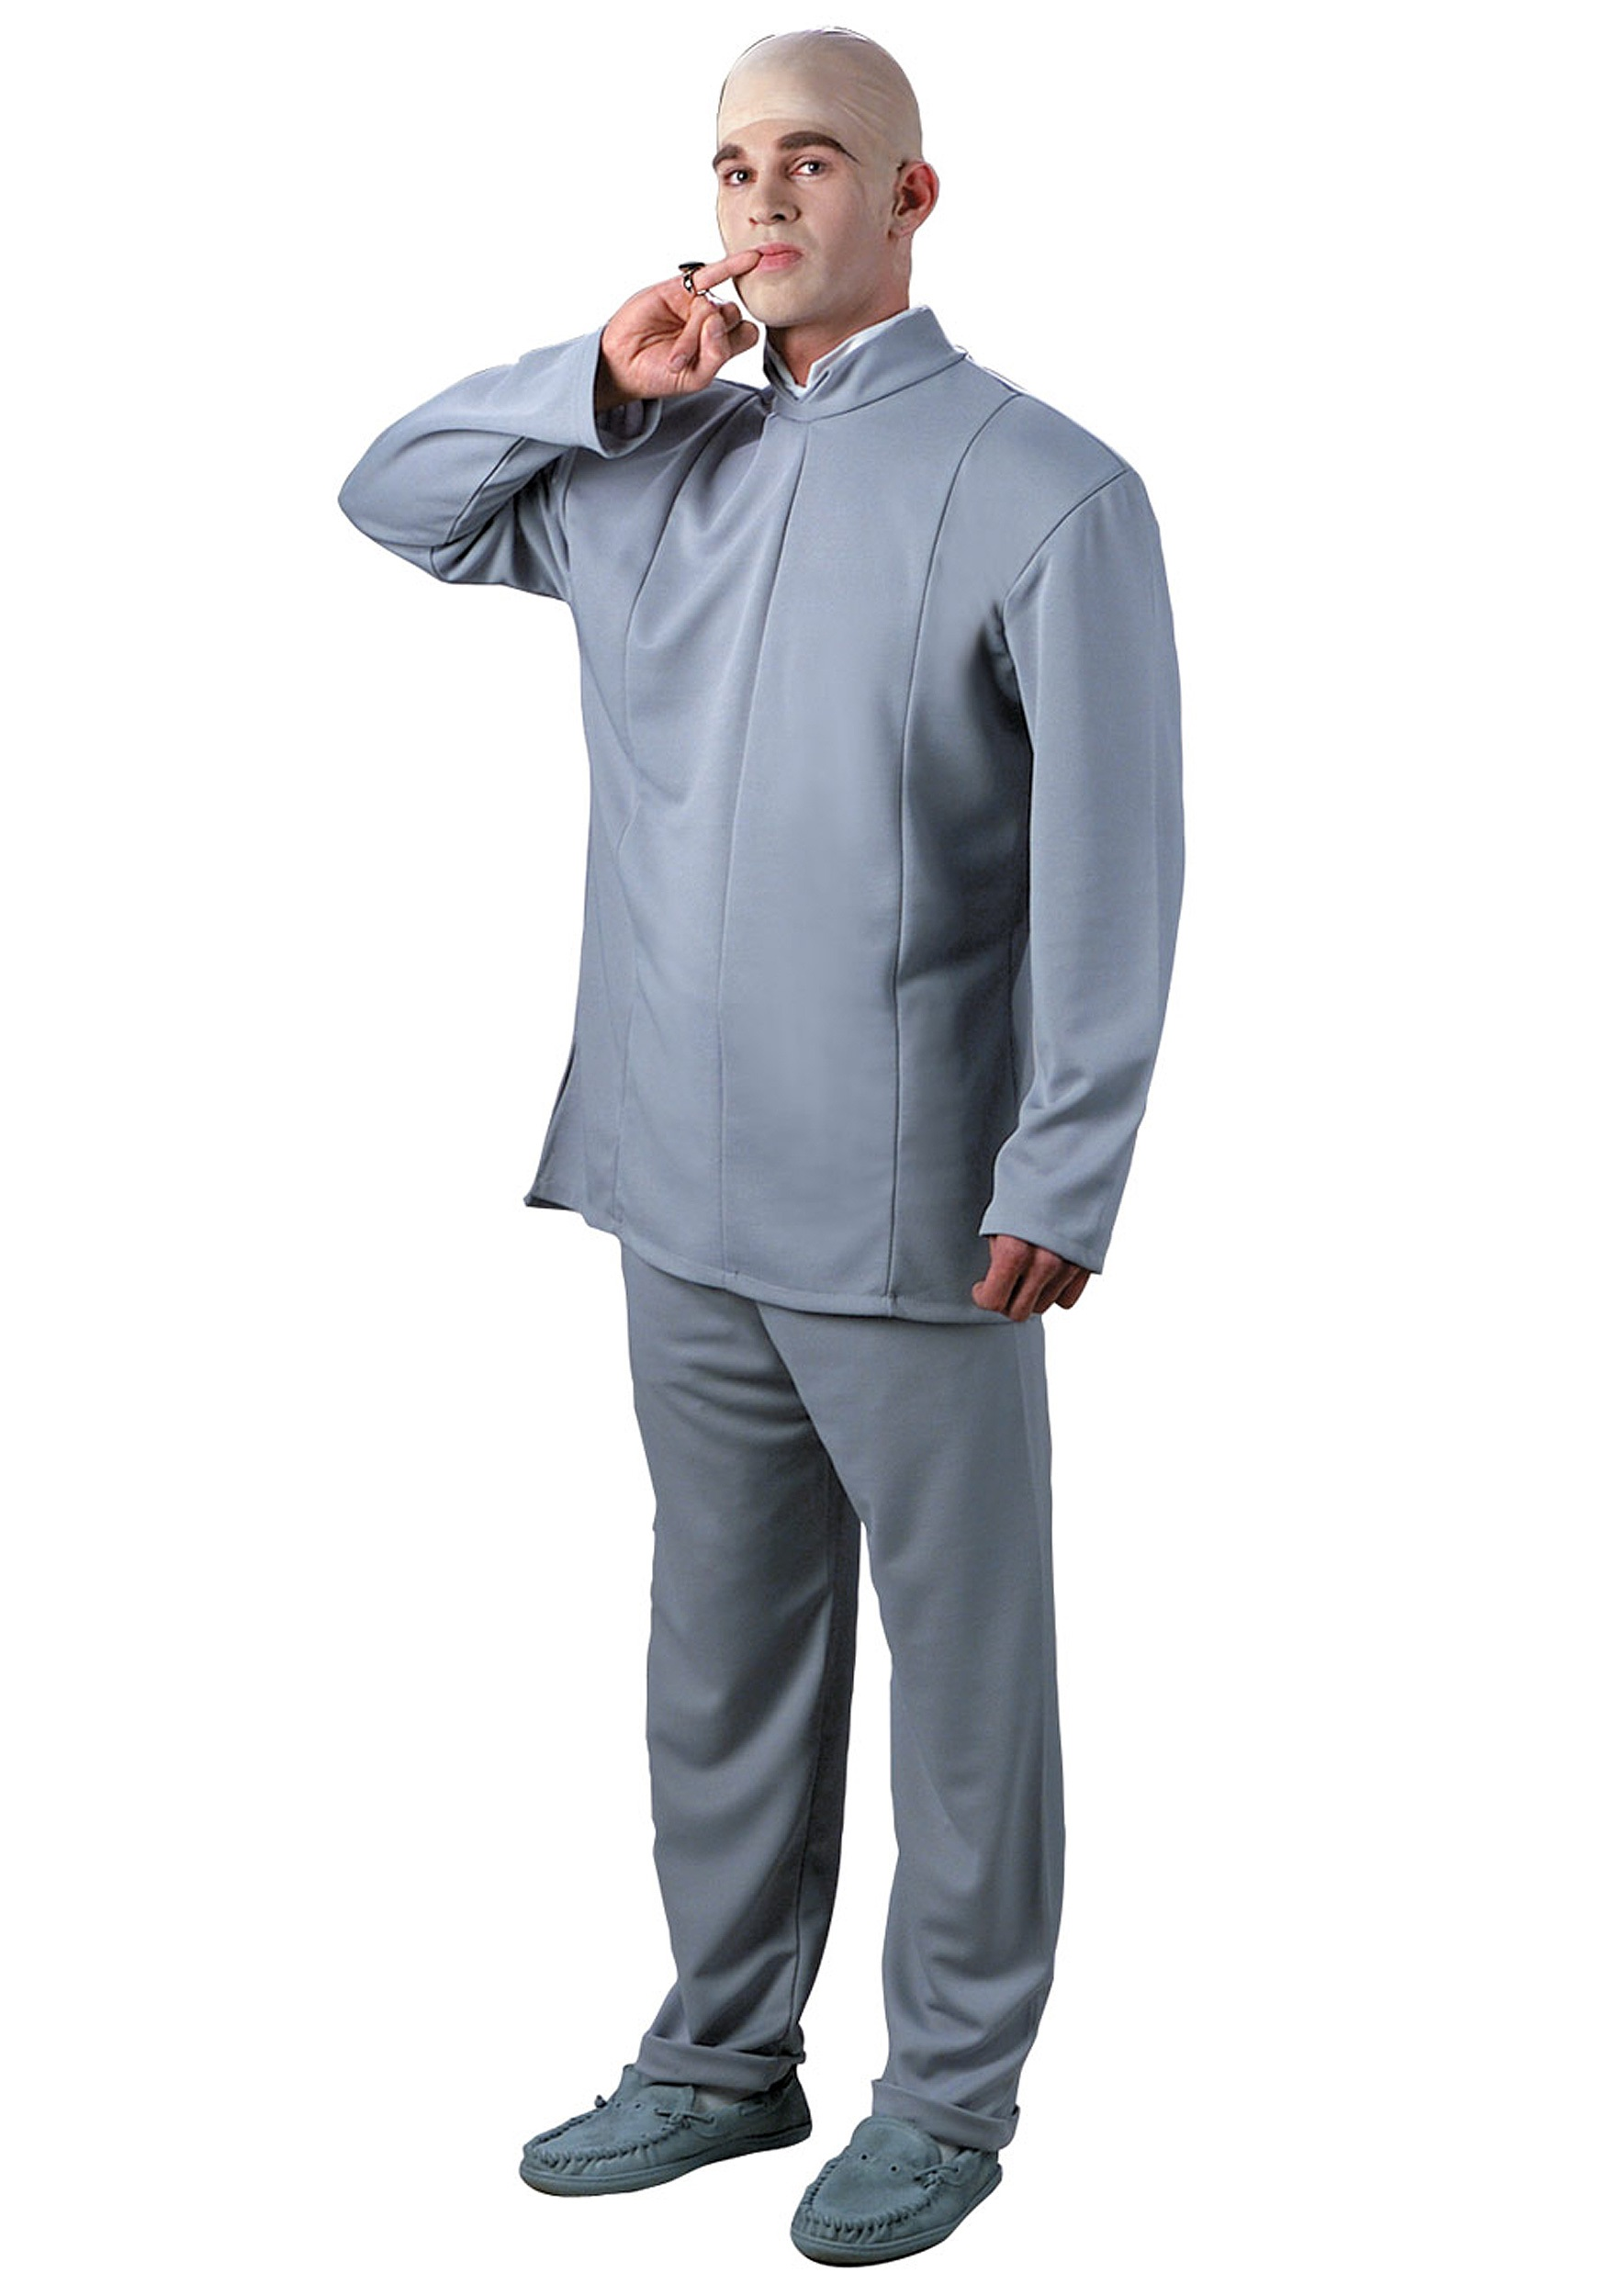 Dr. Evil Adult Costume  sc 1 st  Halloween Costumes & Dr. Evil Adult Costume - Halloween Costumes